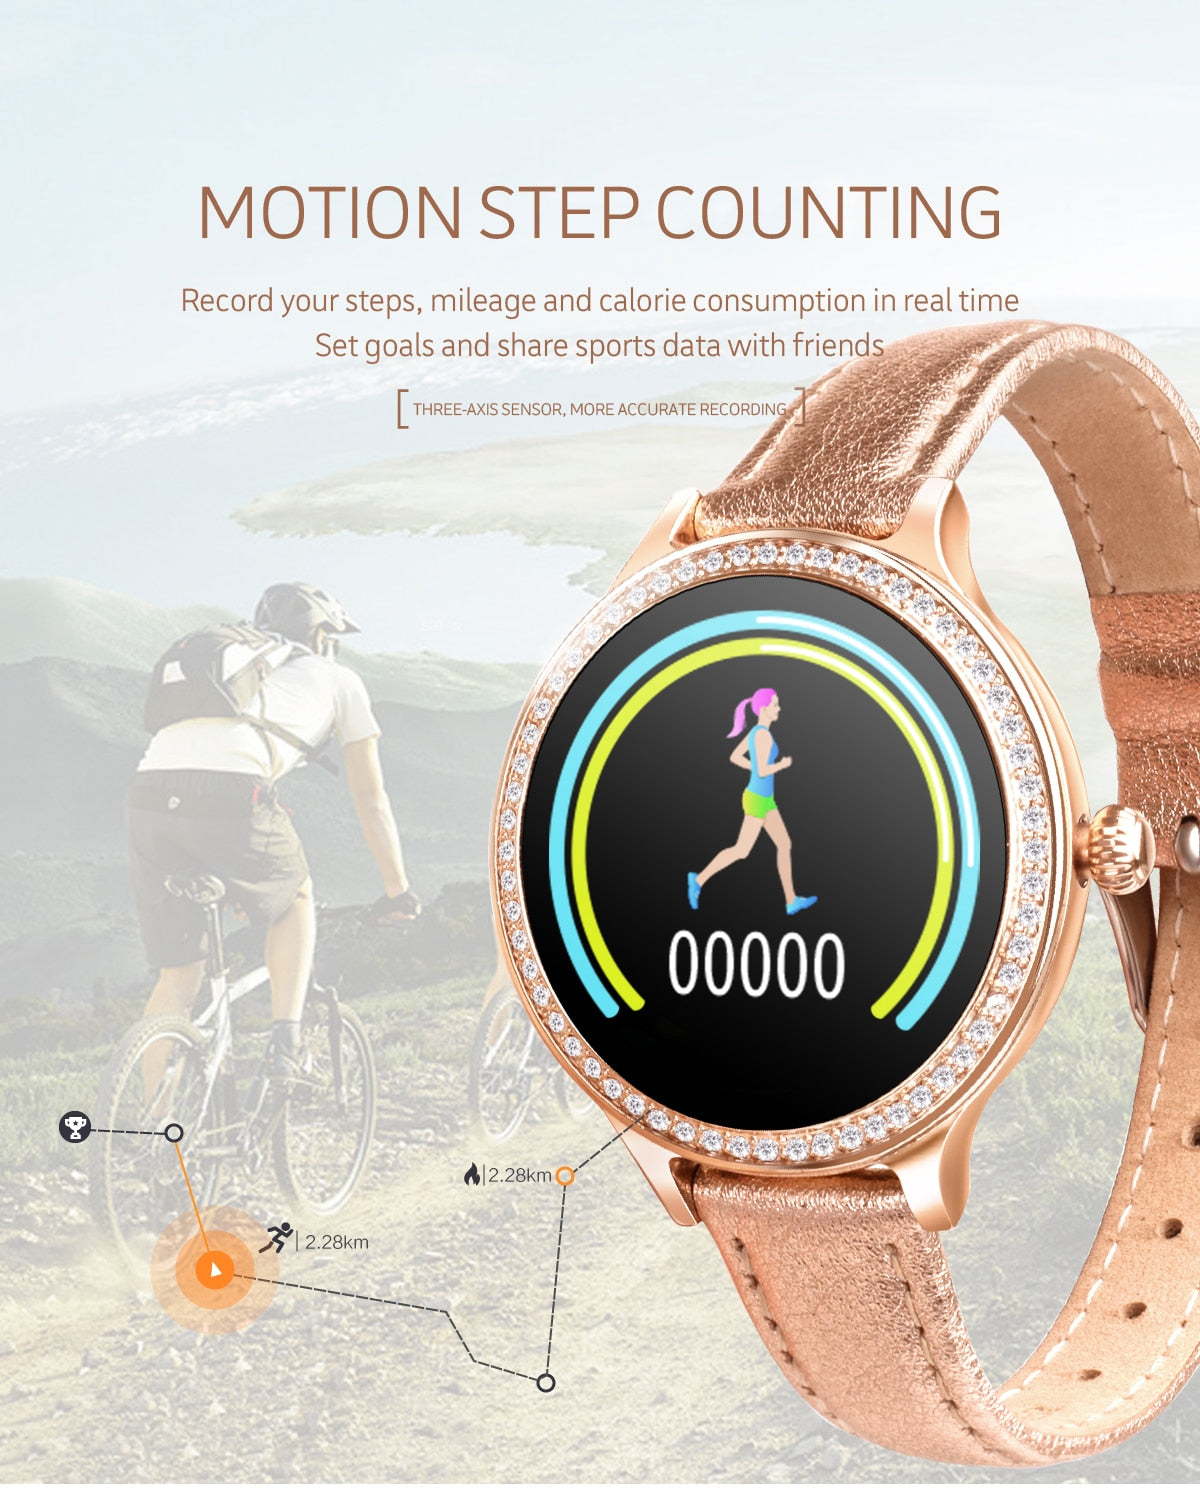 Ladies Diamond Smart Bracelet - Monitor Your Health & Fitness